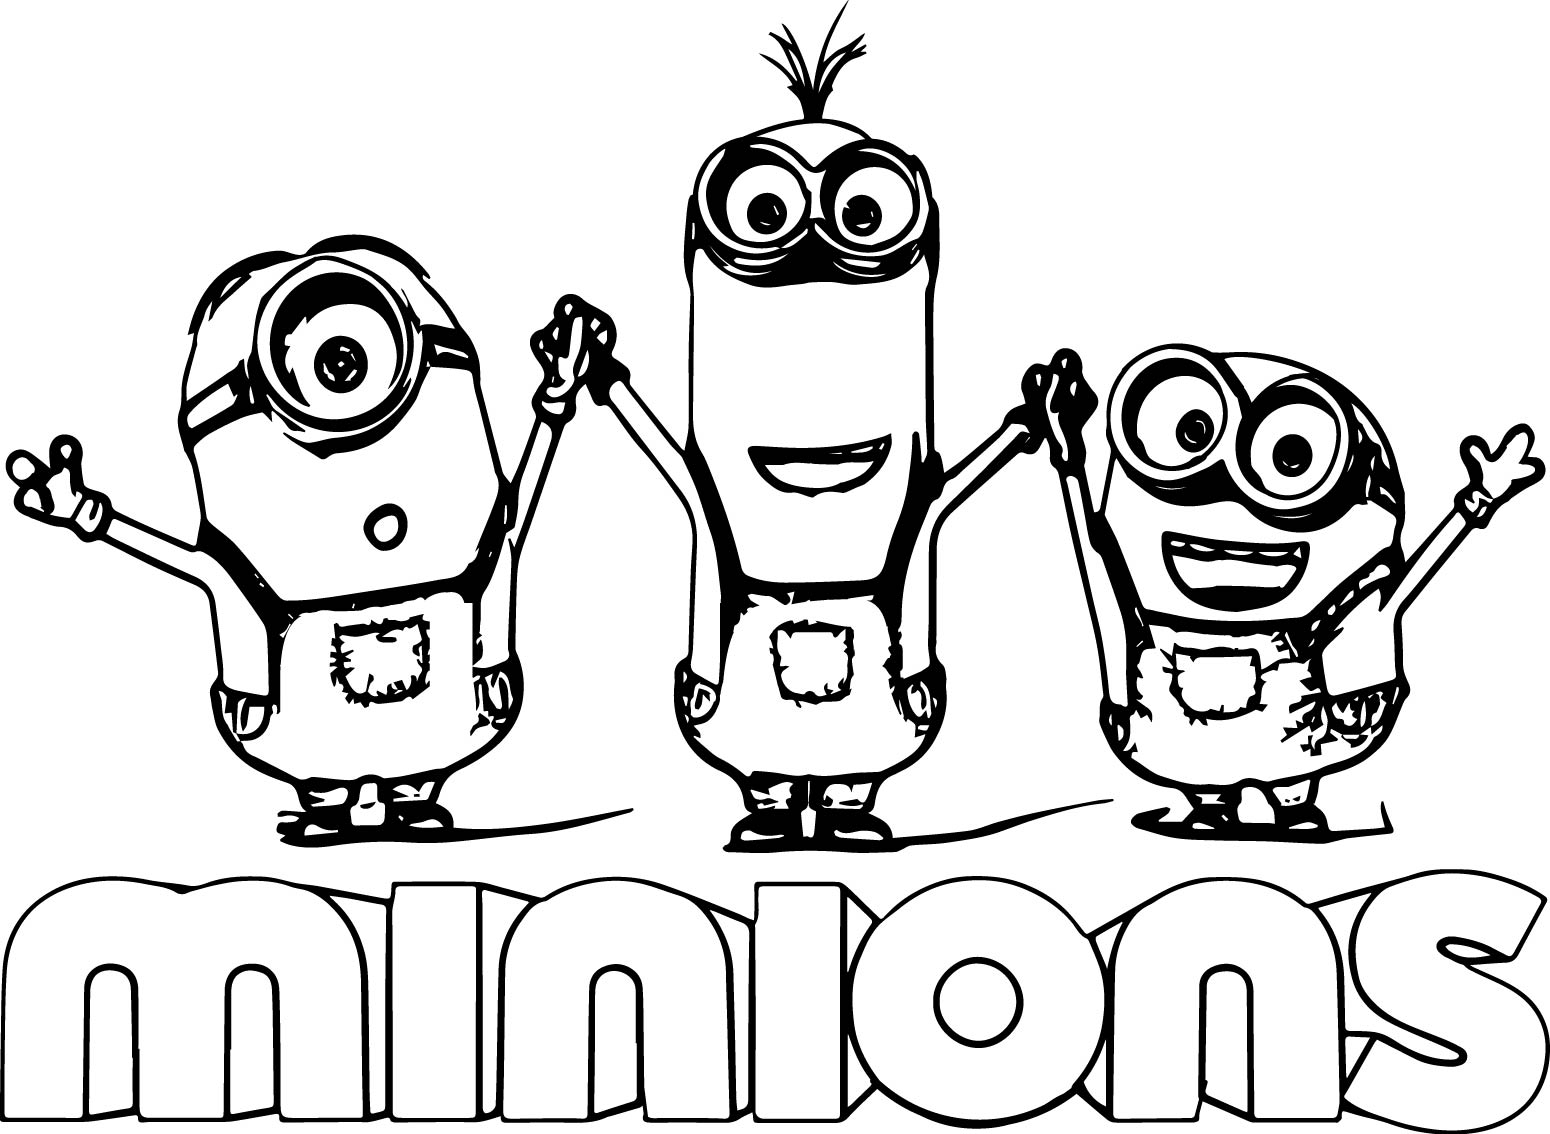 coloring print pages minions - photo#22